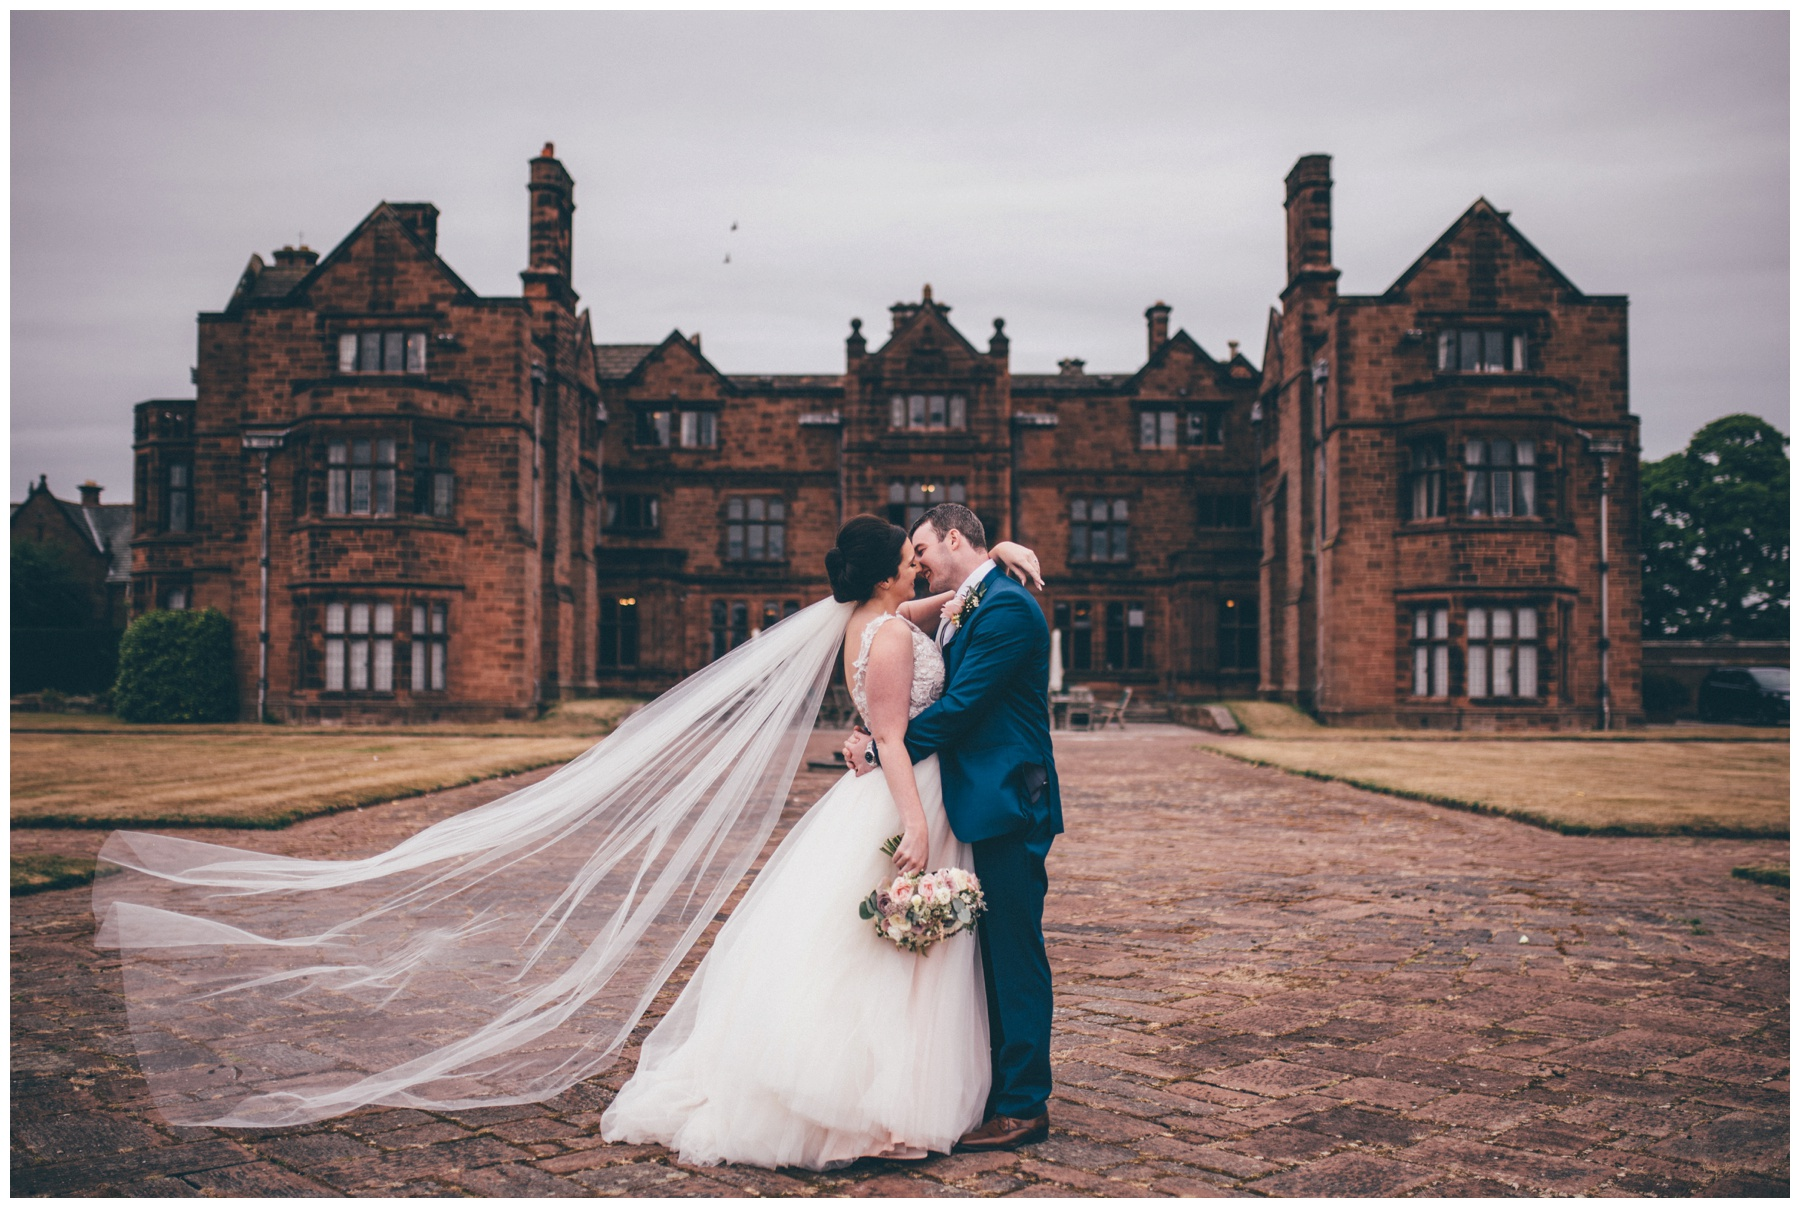 Stunning veil blowing in the wind at summer wedding at Thornton Manor in Cheshire.